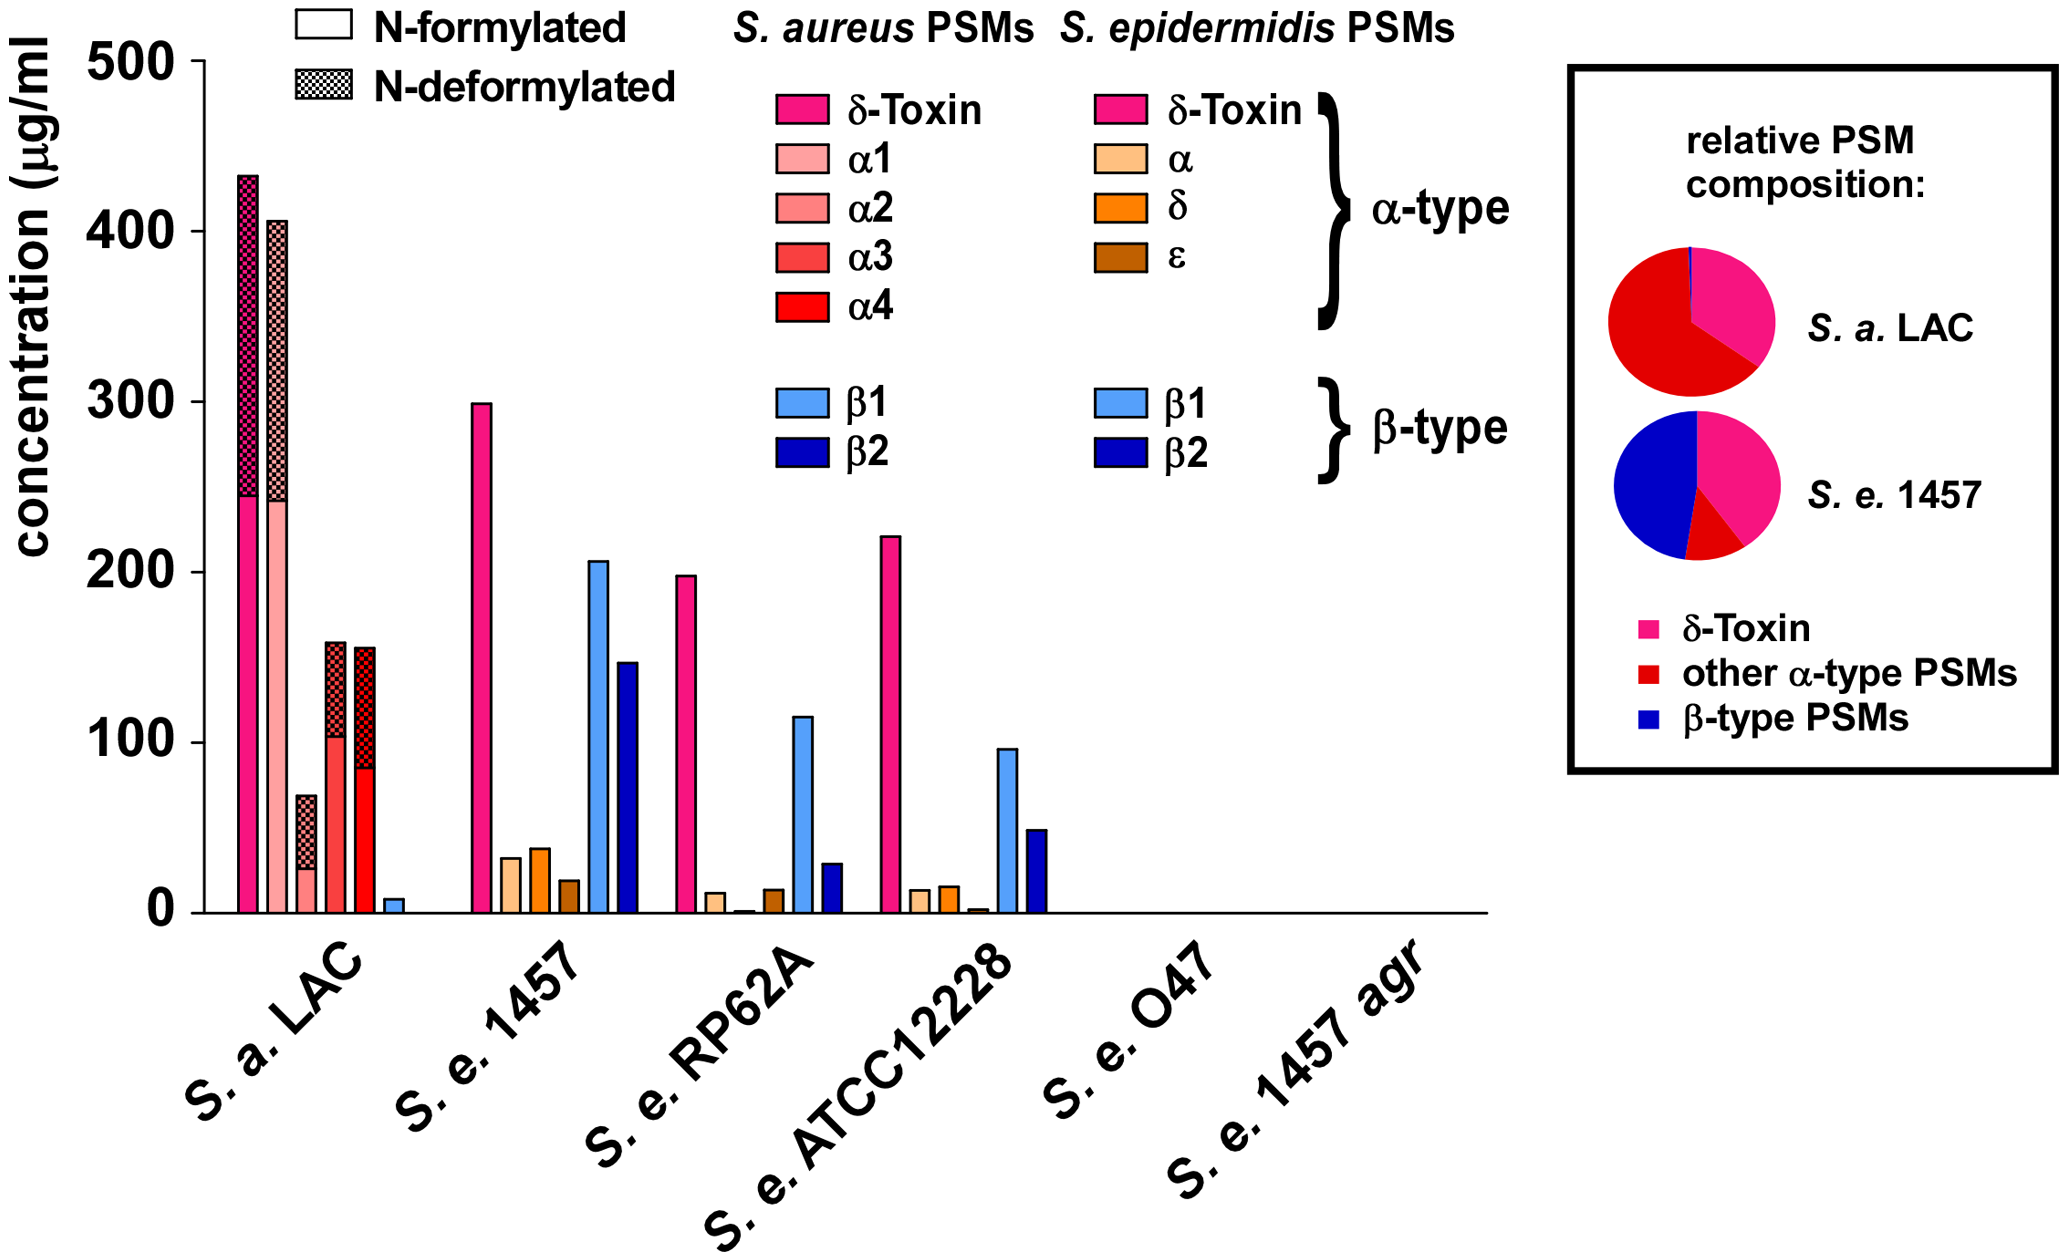 PSM concentrations in <i>S. epidermidis</i> culture filtrates.